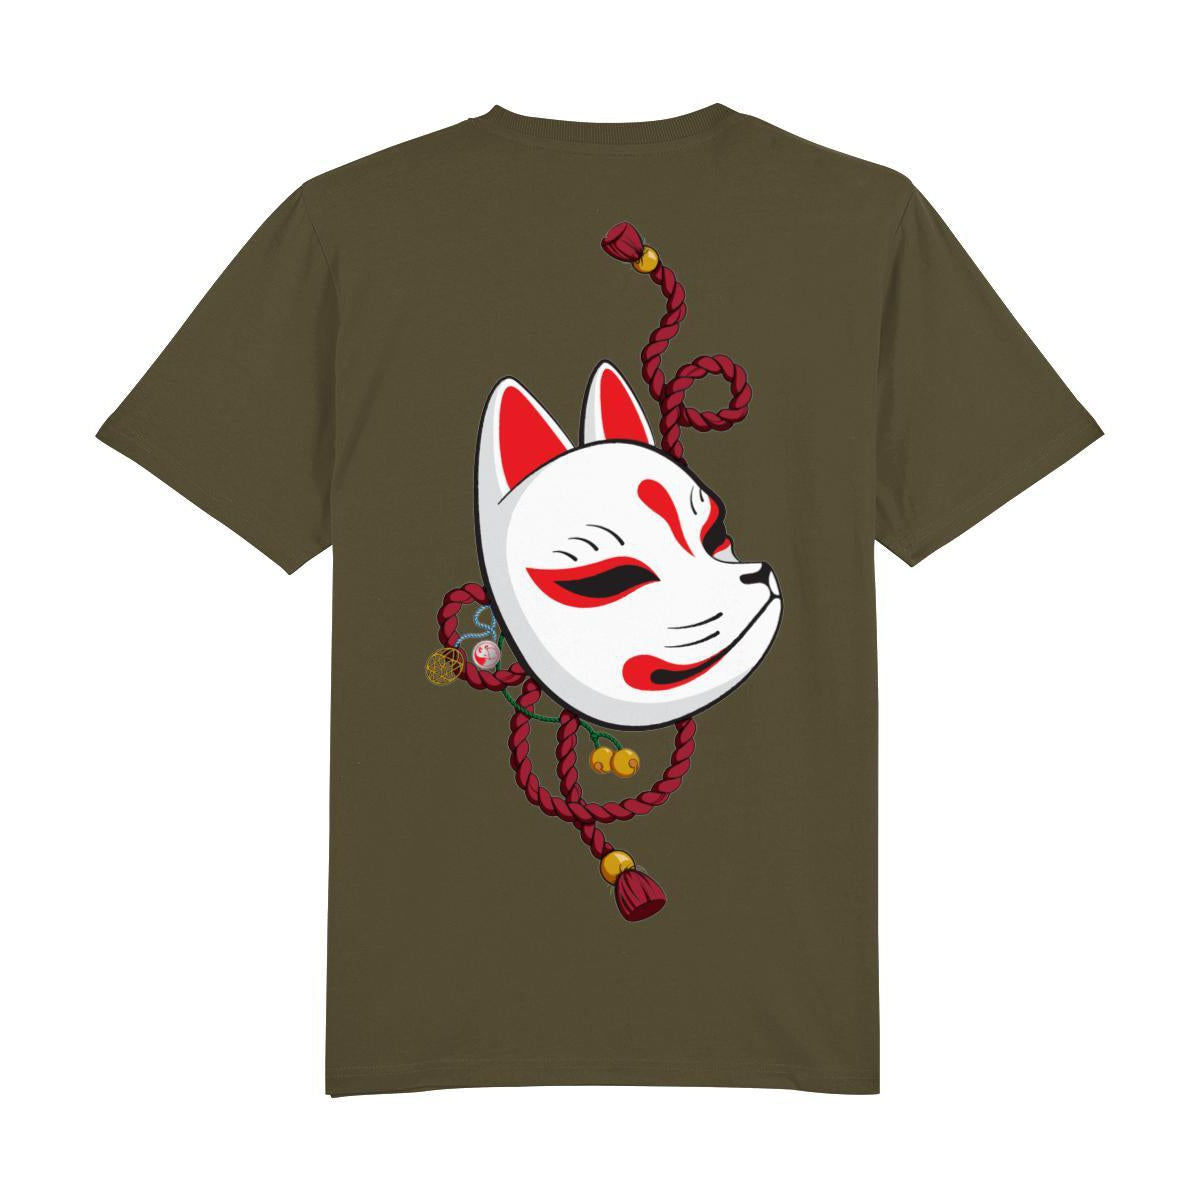 Kitsune Mask Back Print-Clothing-Kitsune Clothing UK Ltd